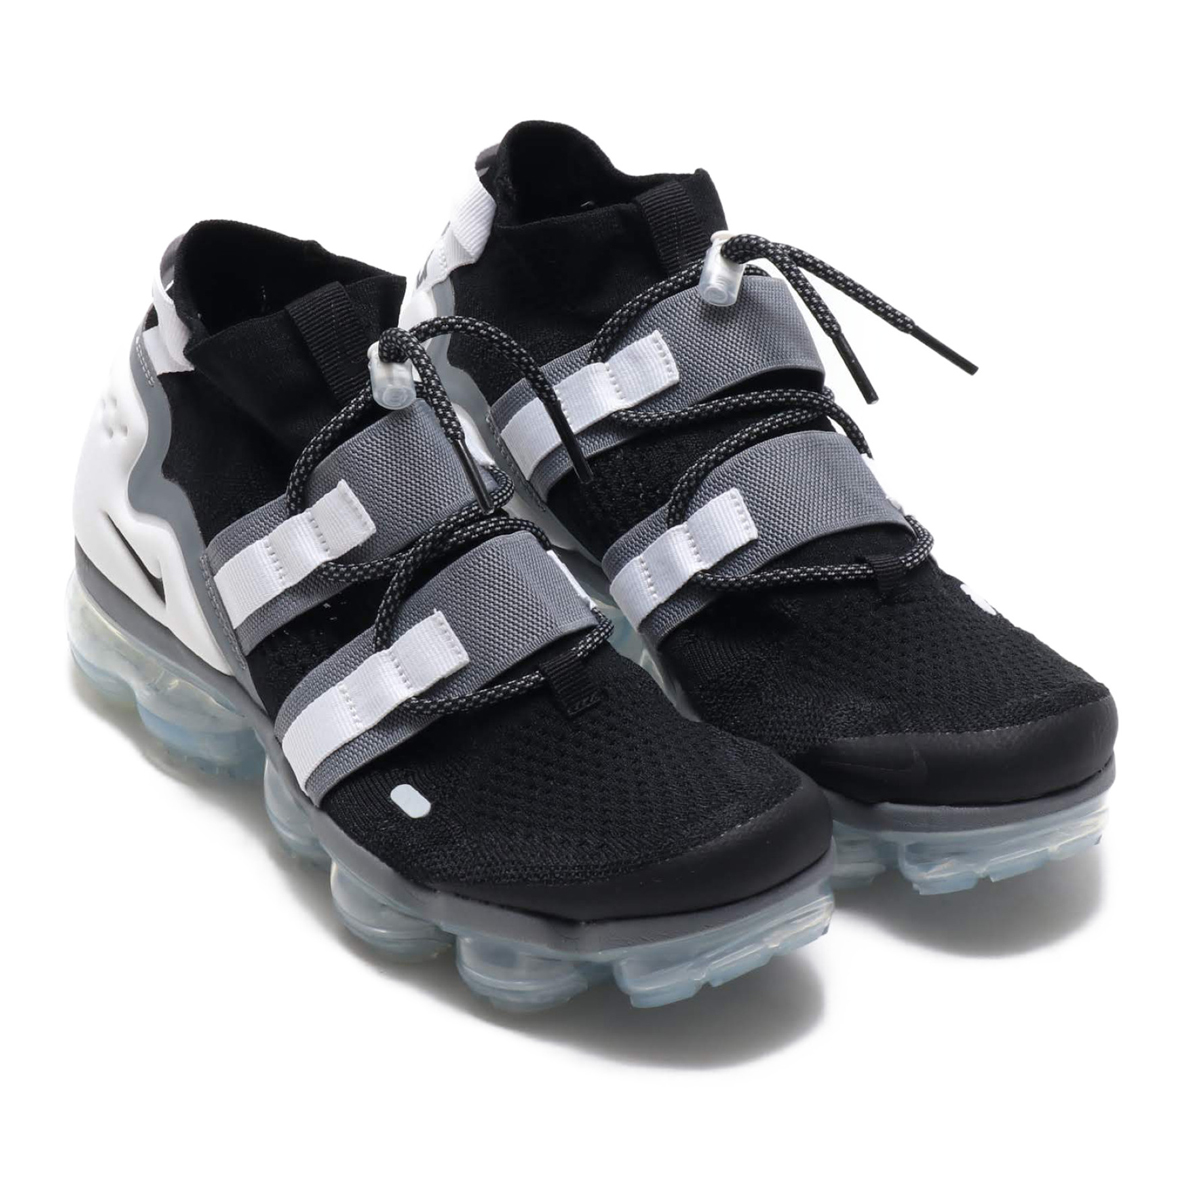 2ee4279a4c1c2 NIKE AIR VAPORMAX FK UTILITY (Nike air vapor max fried food knit utility)  BLACK BLACK-COOL GREY-WHITE 18FA-S